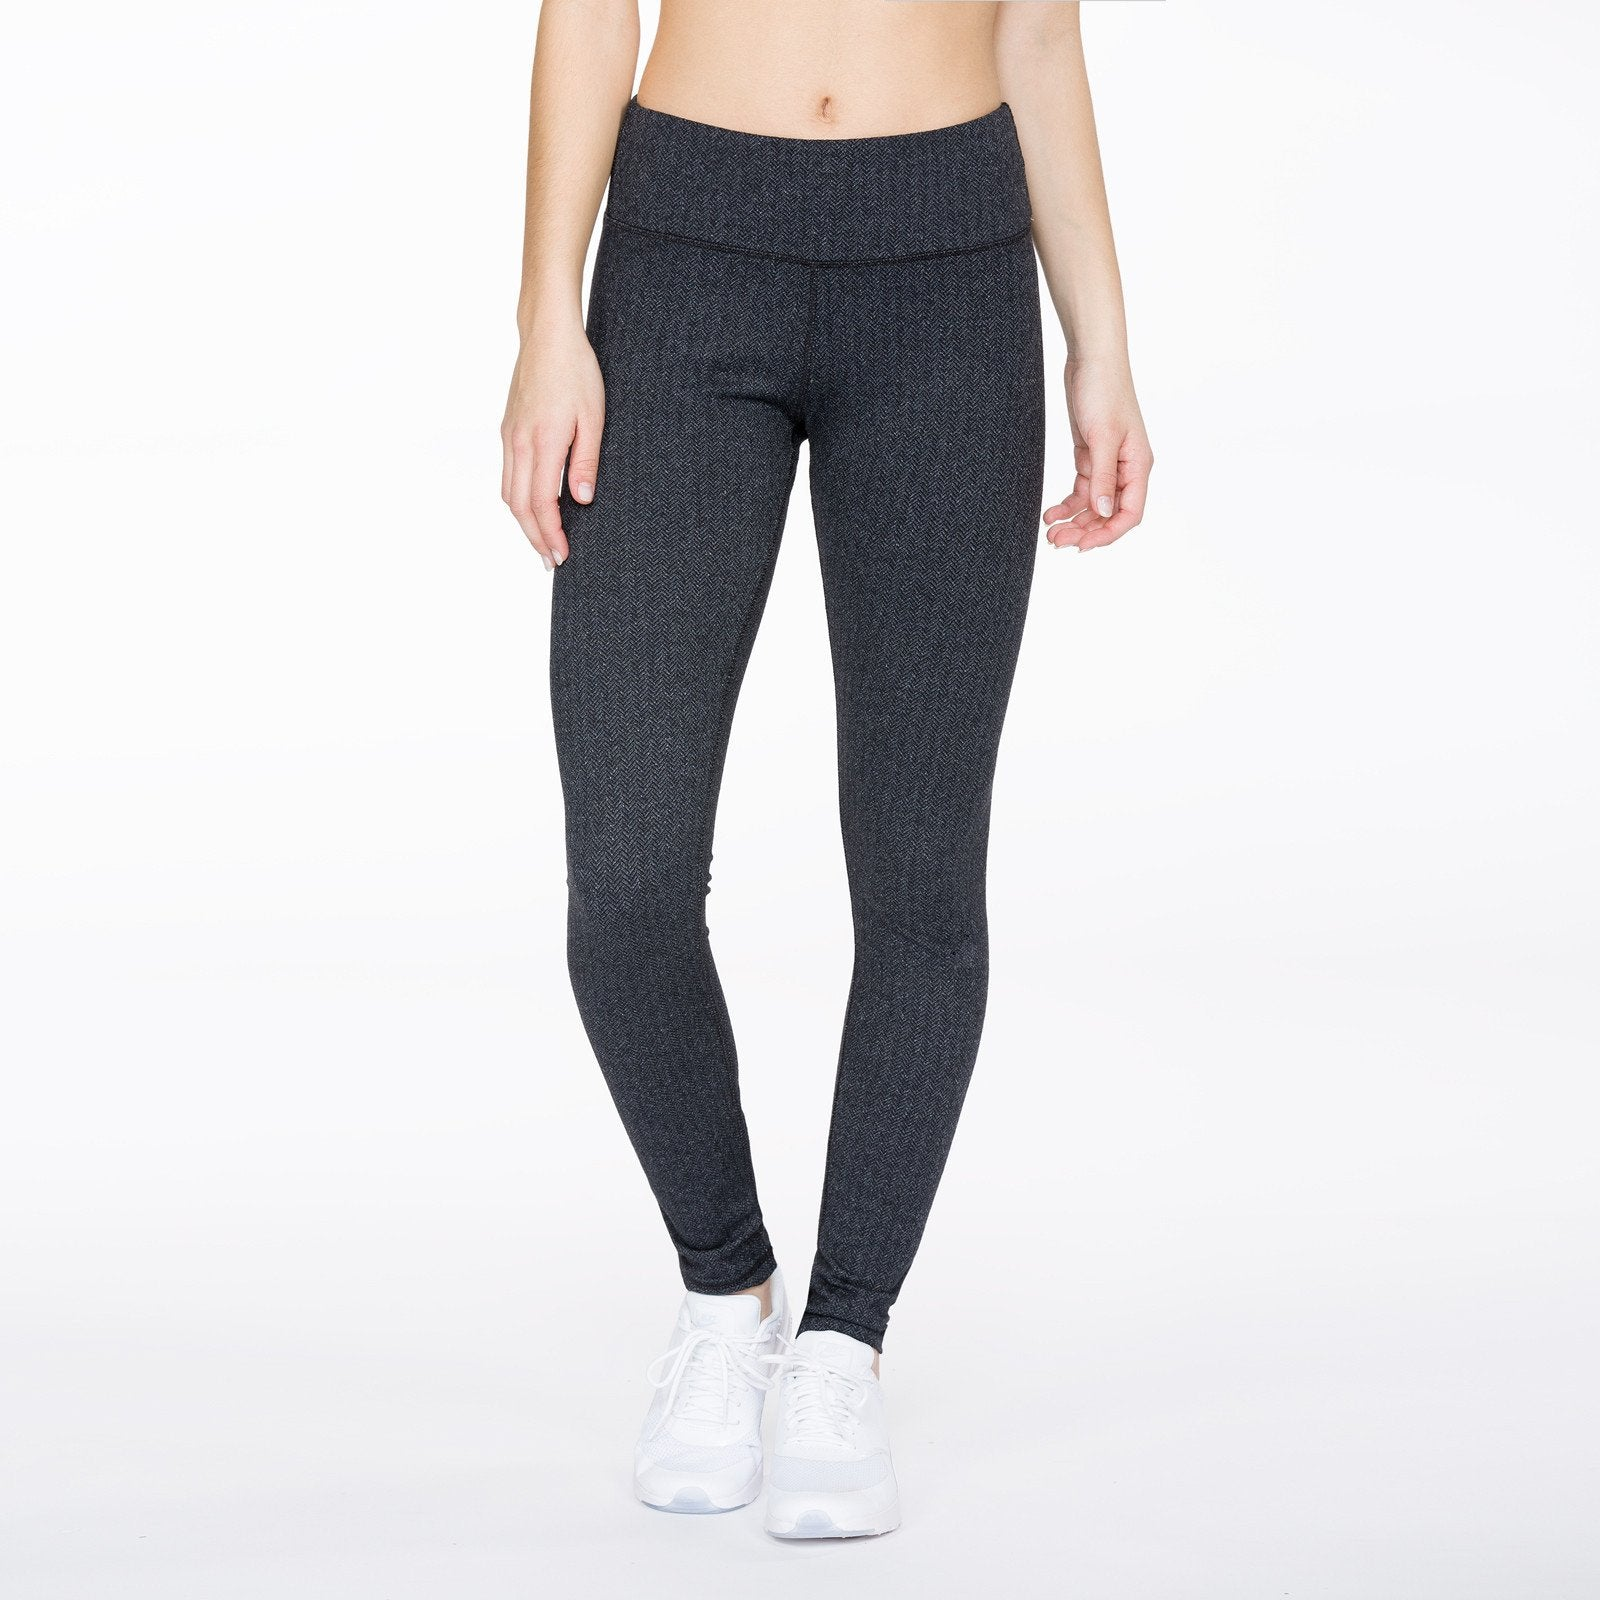 Kyodan Warm Running Leggings